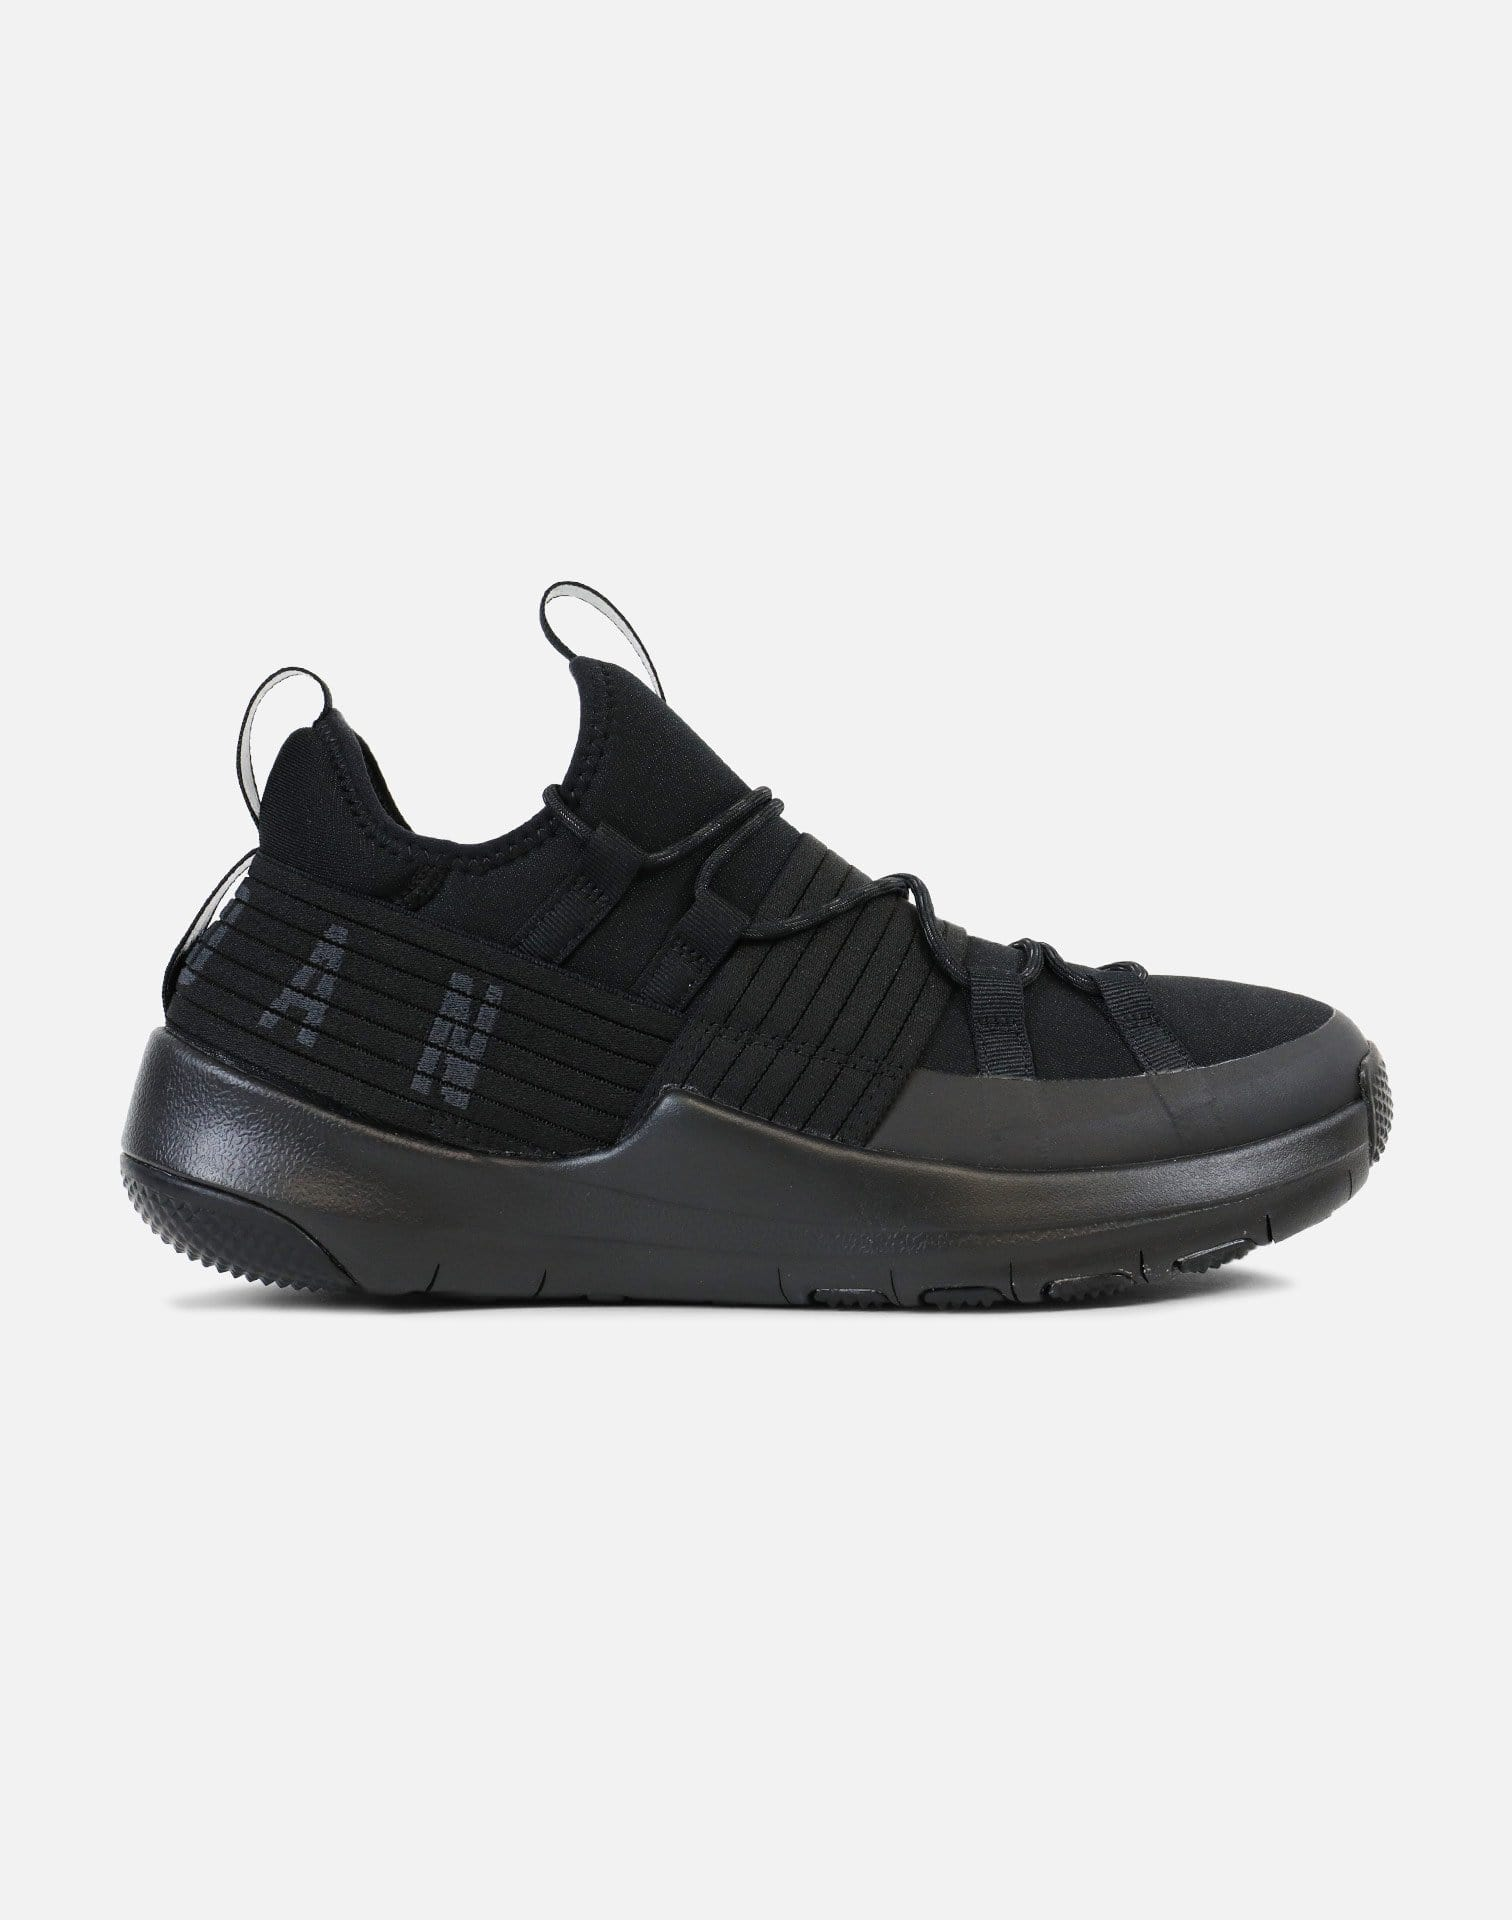 Jordan Trainer Pro (Black/Anthracite)